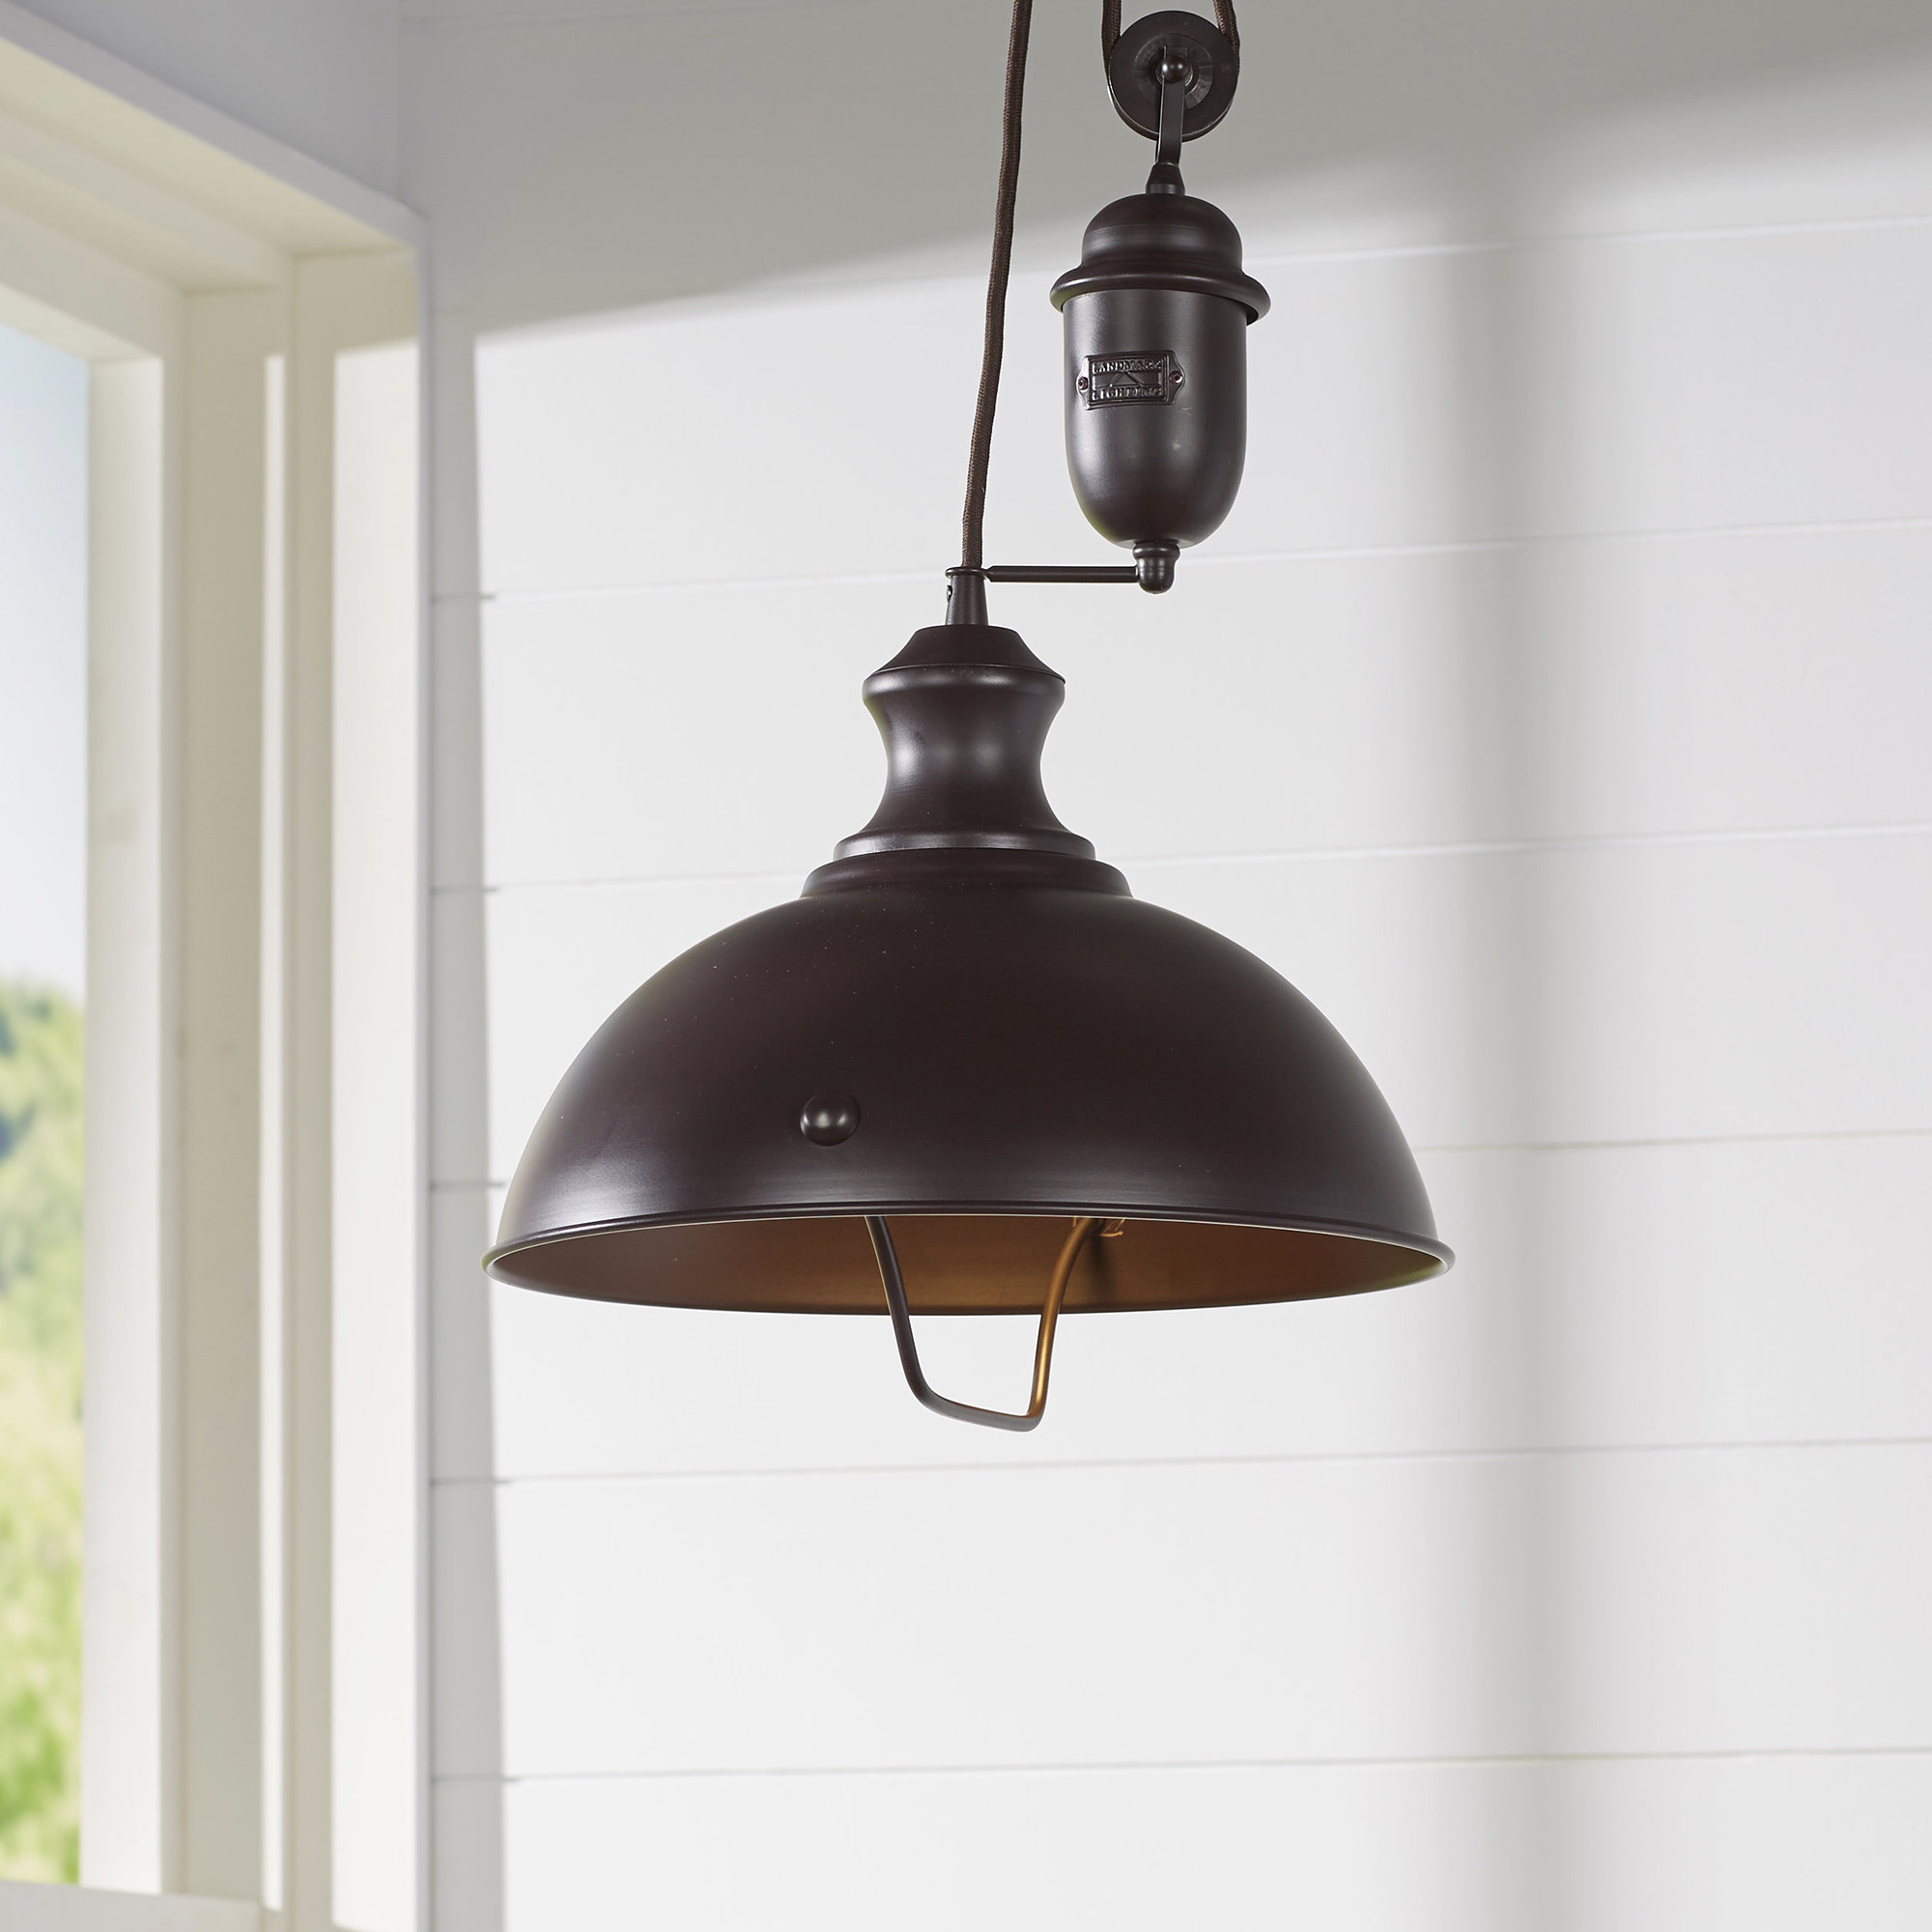 Proctor 1 Light Bowl Pendant | Wayfair With Proctor 1 Light Bowl Pendants (View 5 of 30)